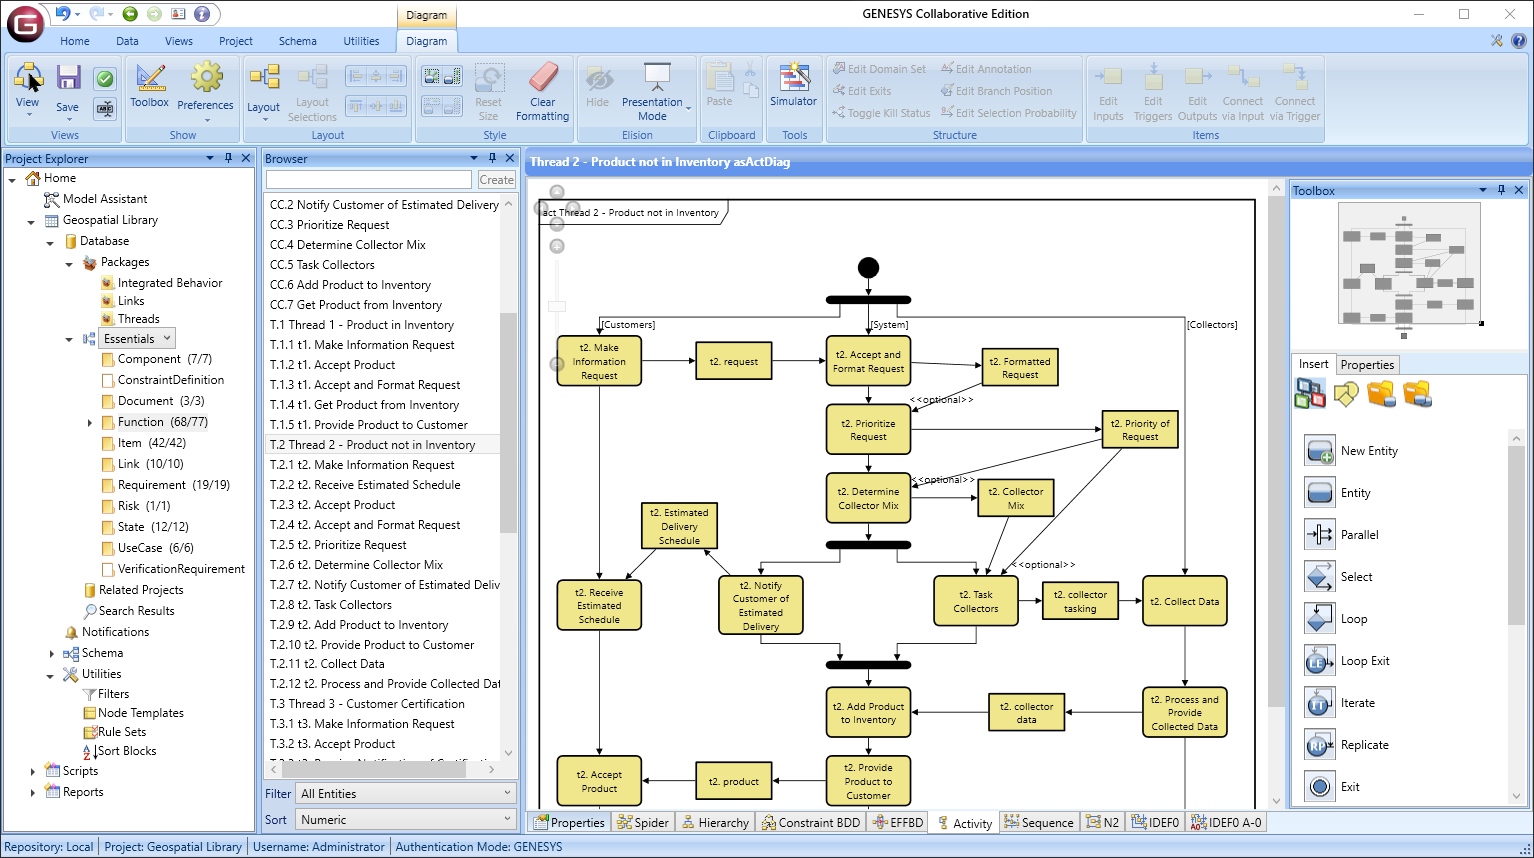 Specify, analyze, and communicate system behavior with your chosen blend of SysML and traditional notations.